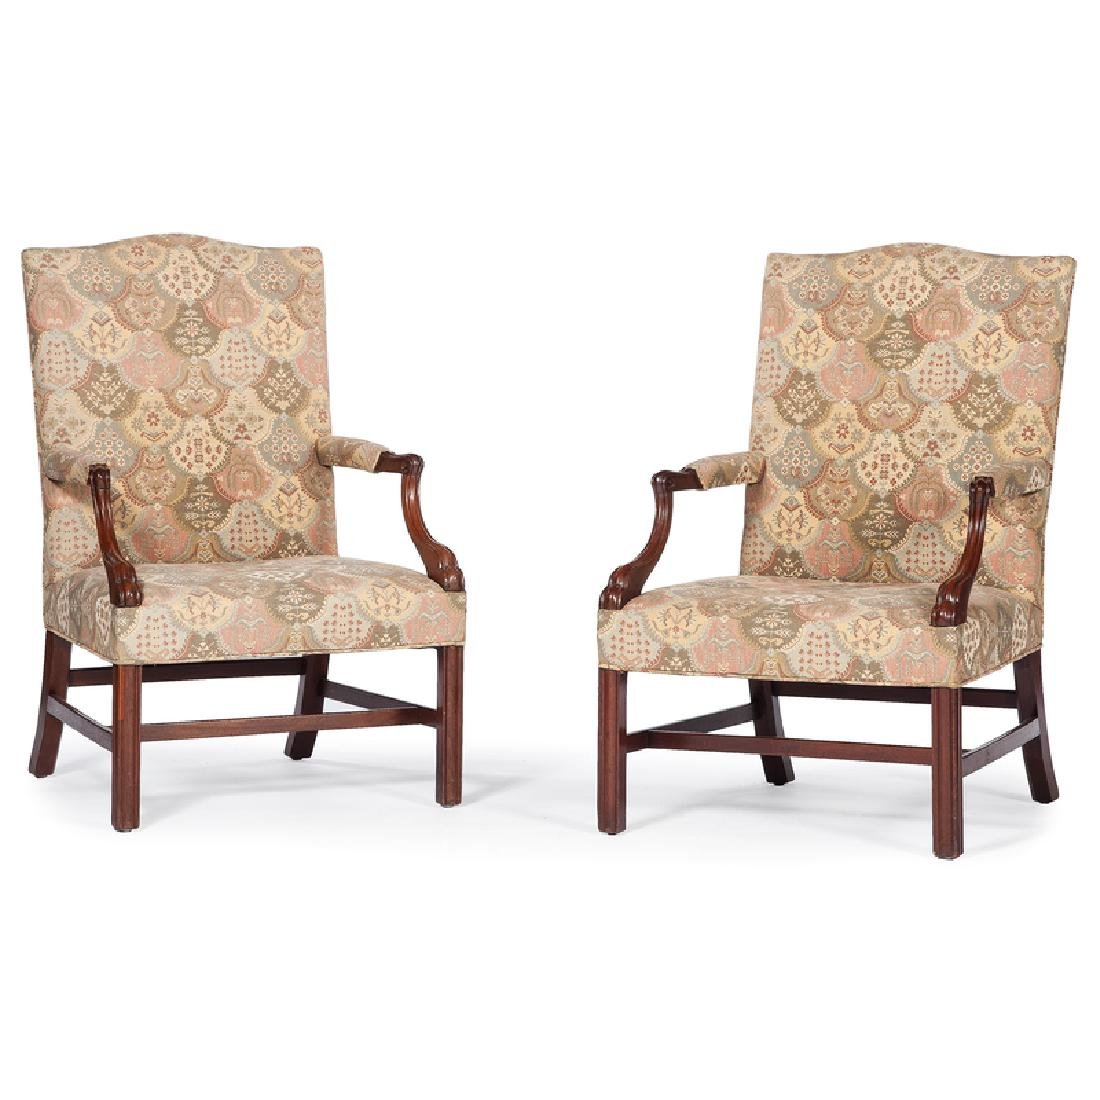 Pair of Chippendale Upholstered Armchairs